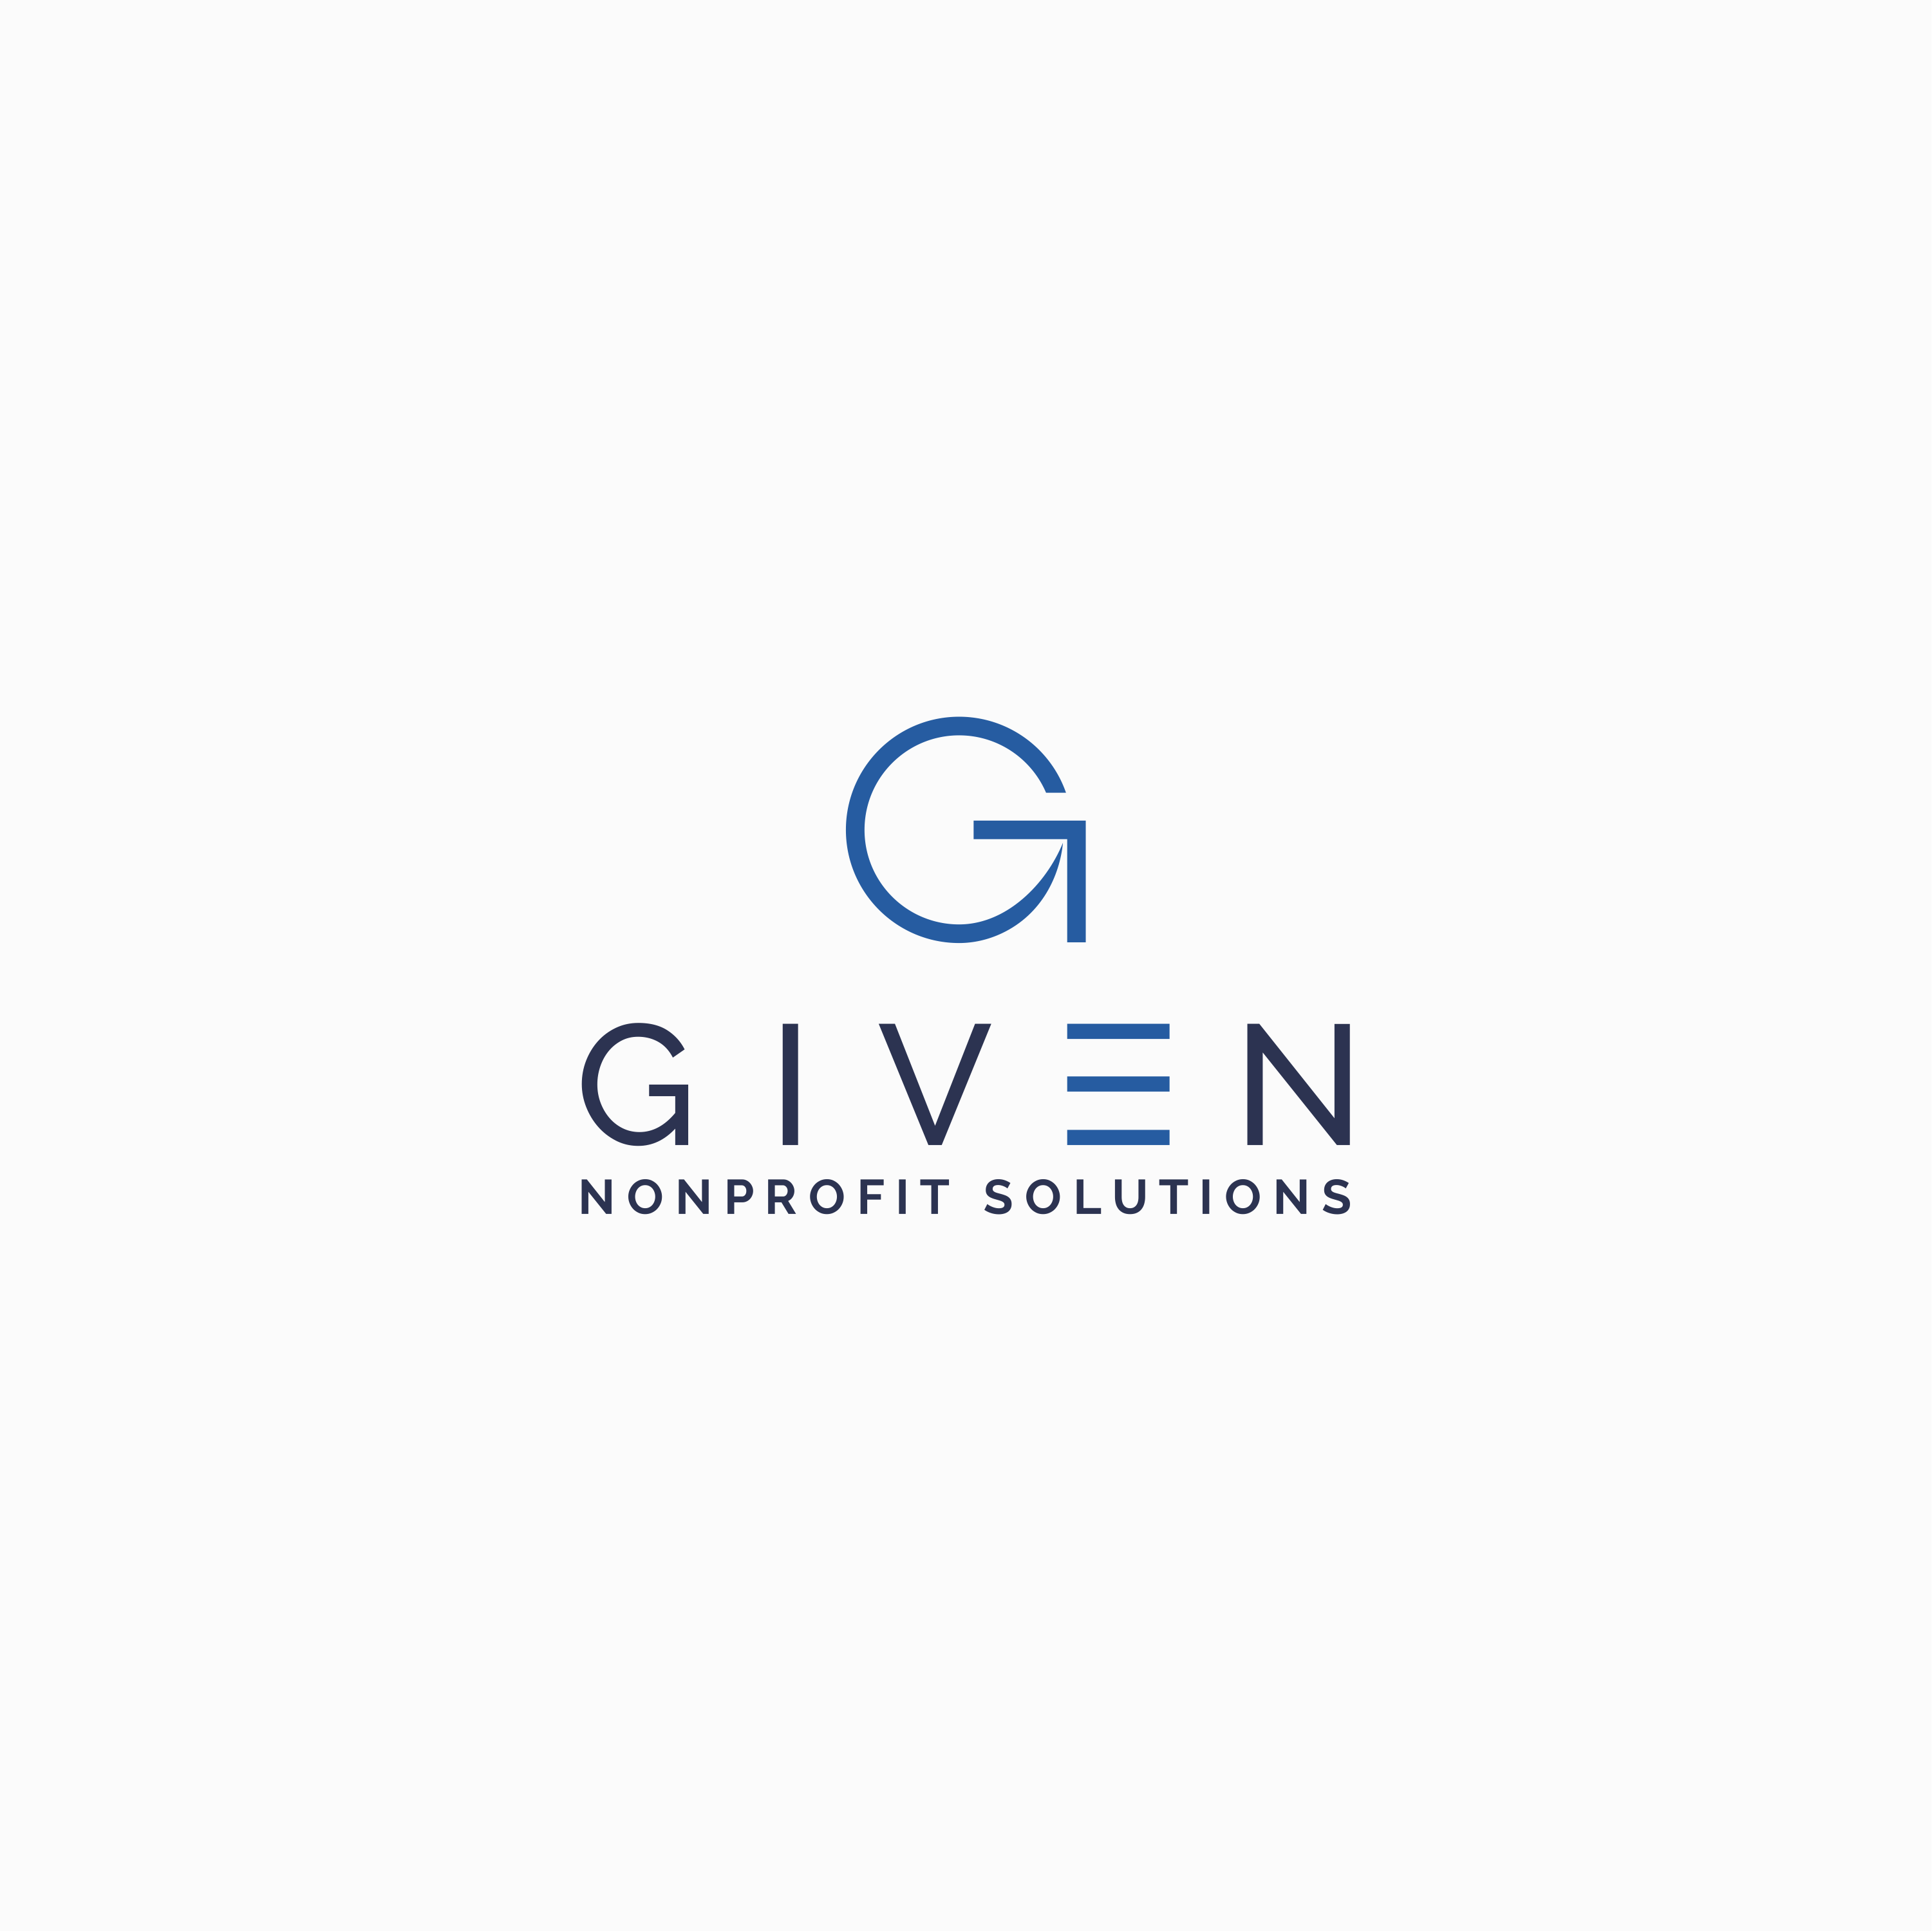 """""""Given Nonprofit Solutions"""" seeks logo design that blends precision with warmth"""